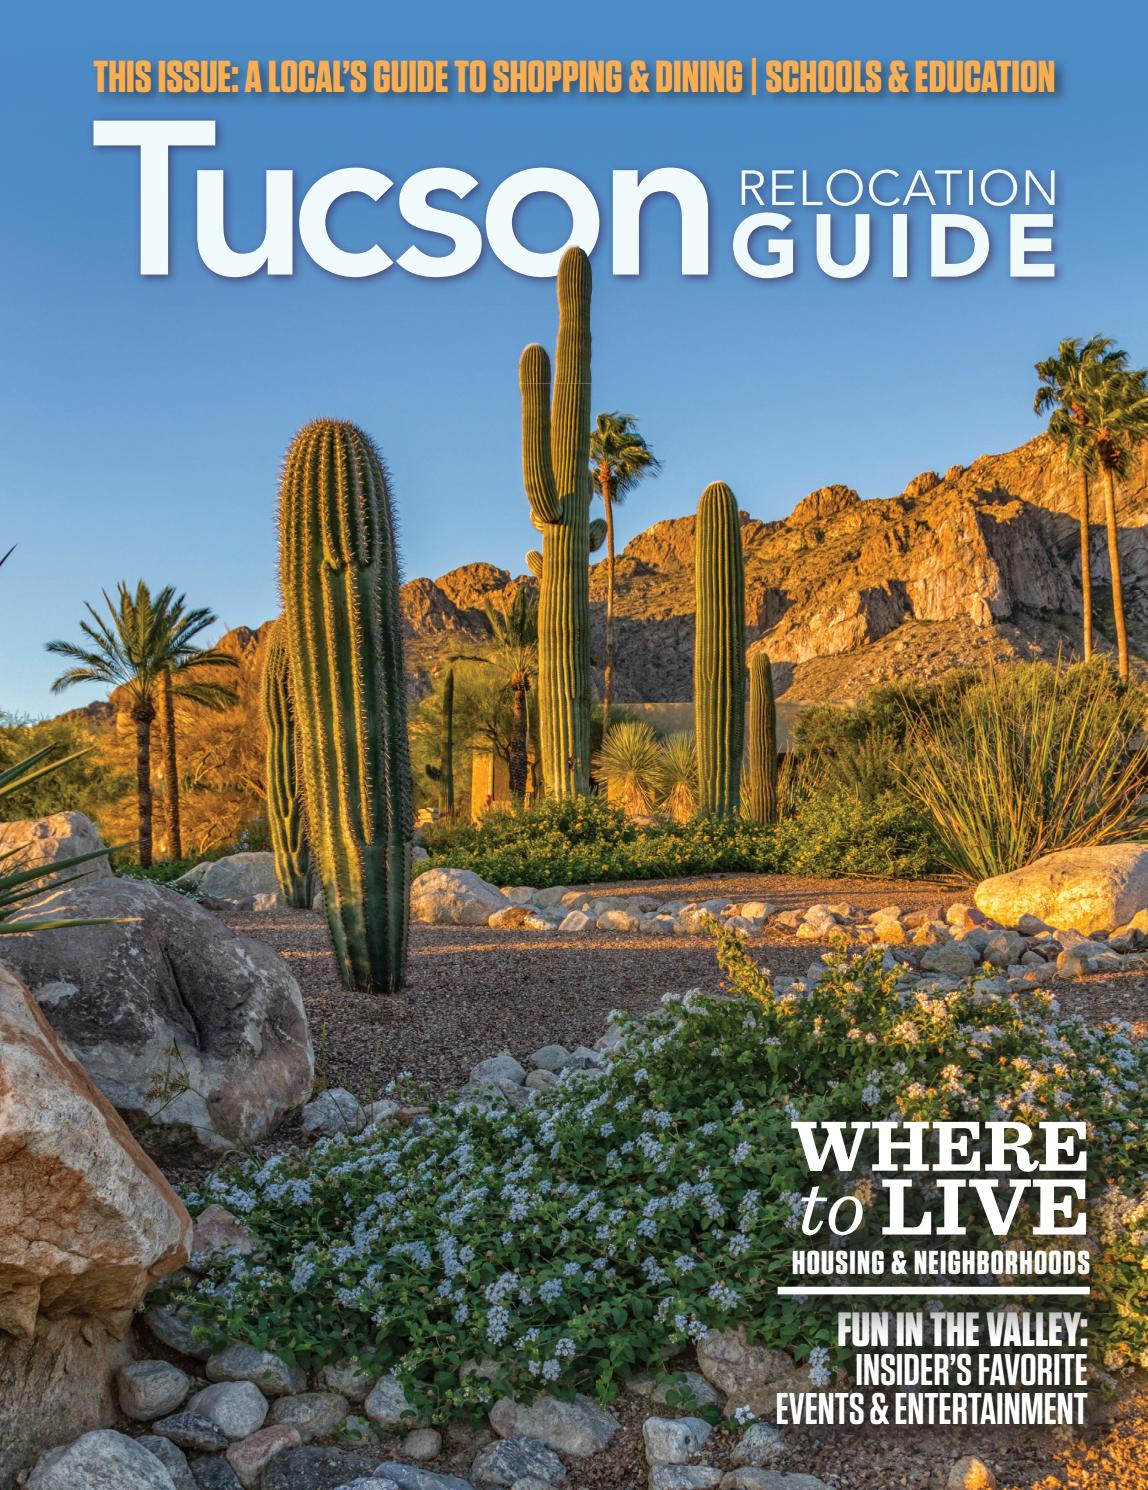 Tucson Relocation Guide - 2019 Issue 1 by web-media-group - issuu